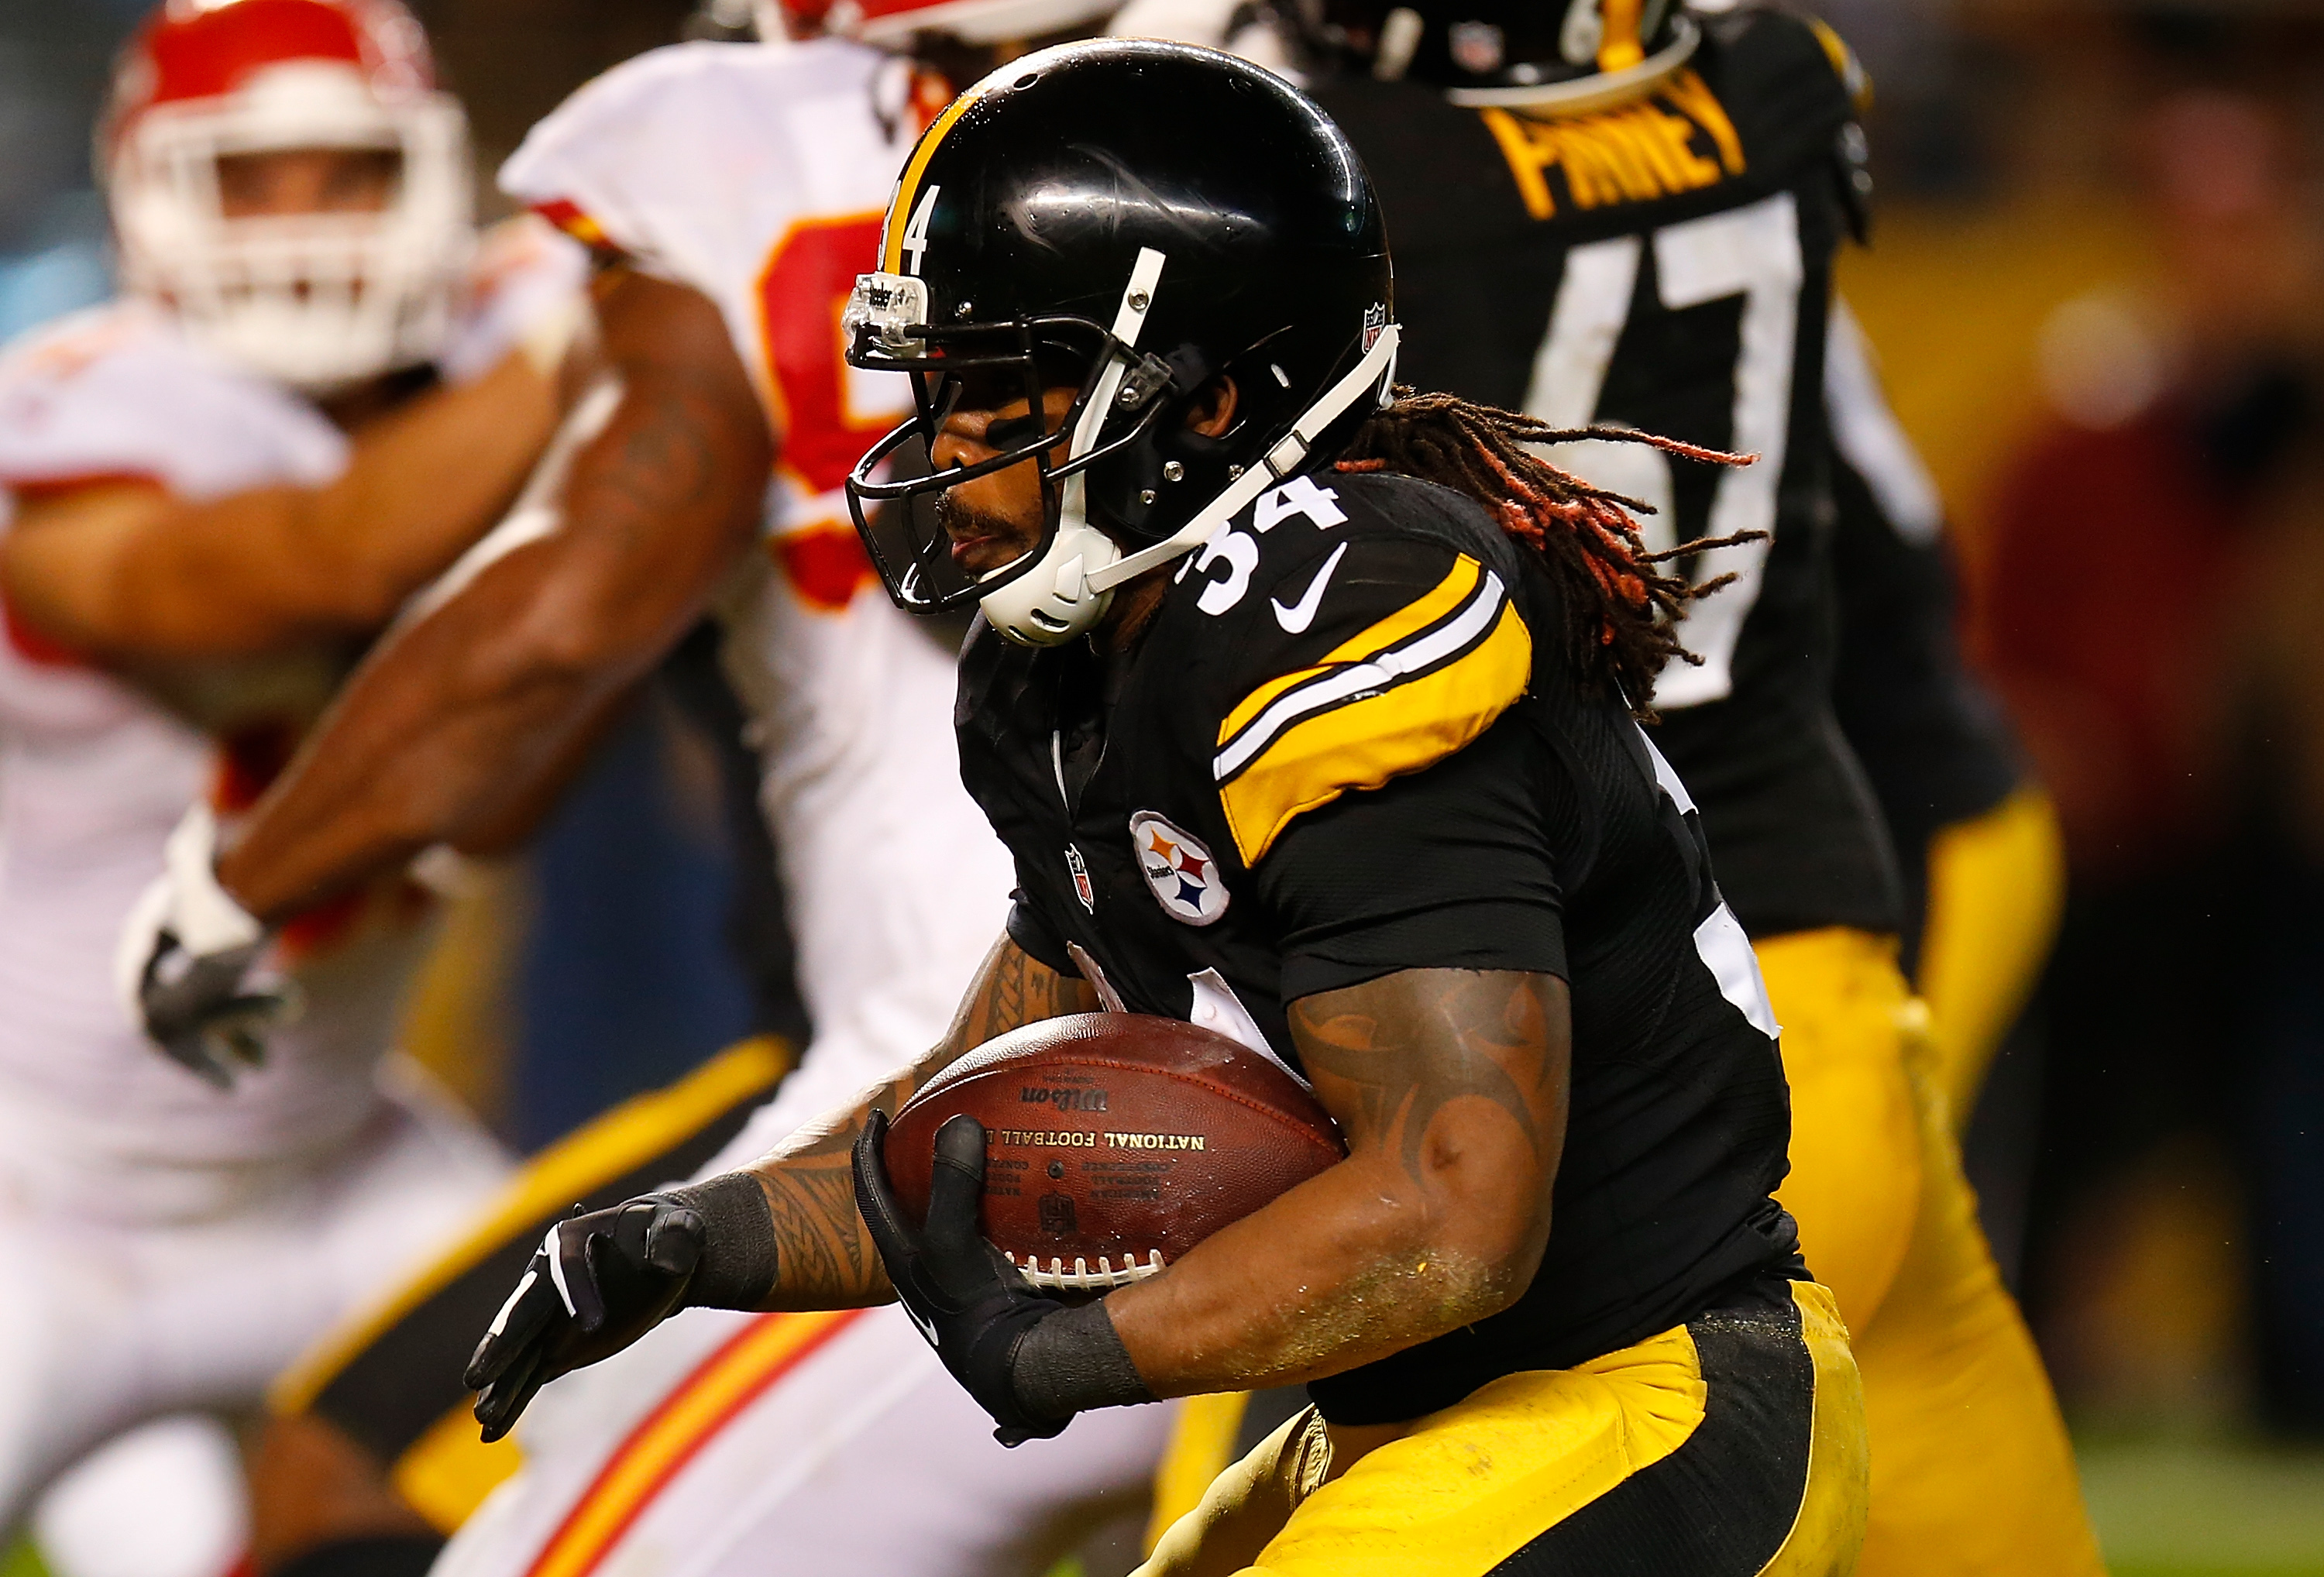 DeAngelo Williams trashes Cowboys fanbase: 'They can't handle defeat'